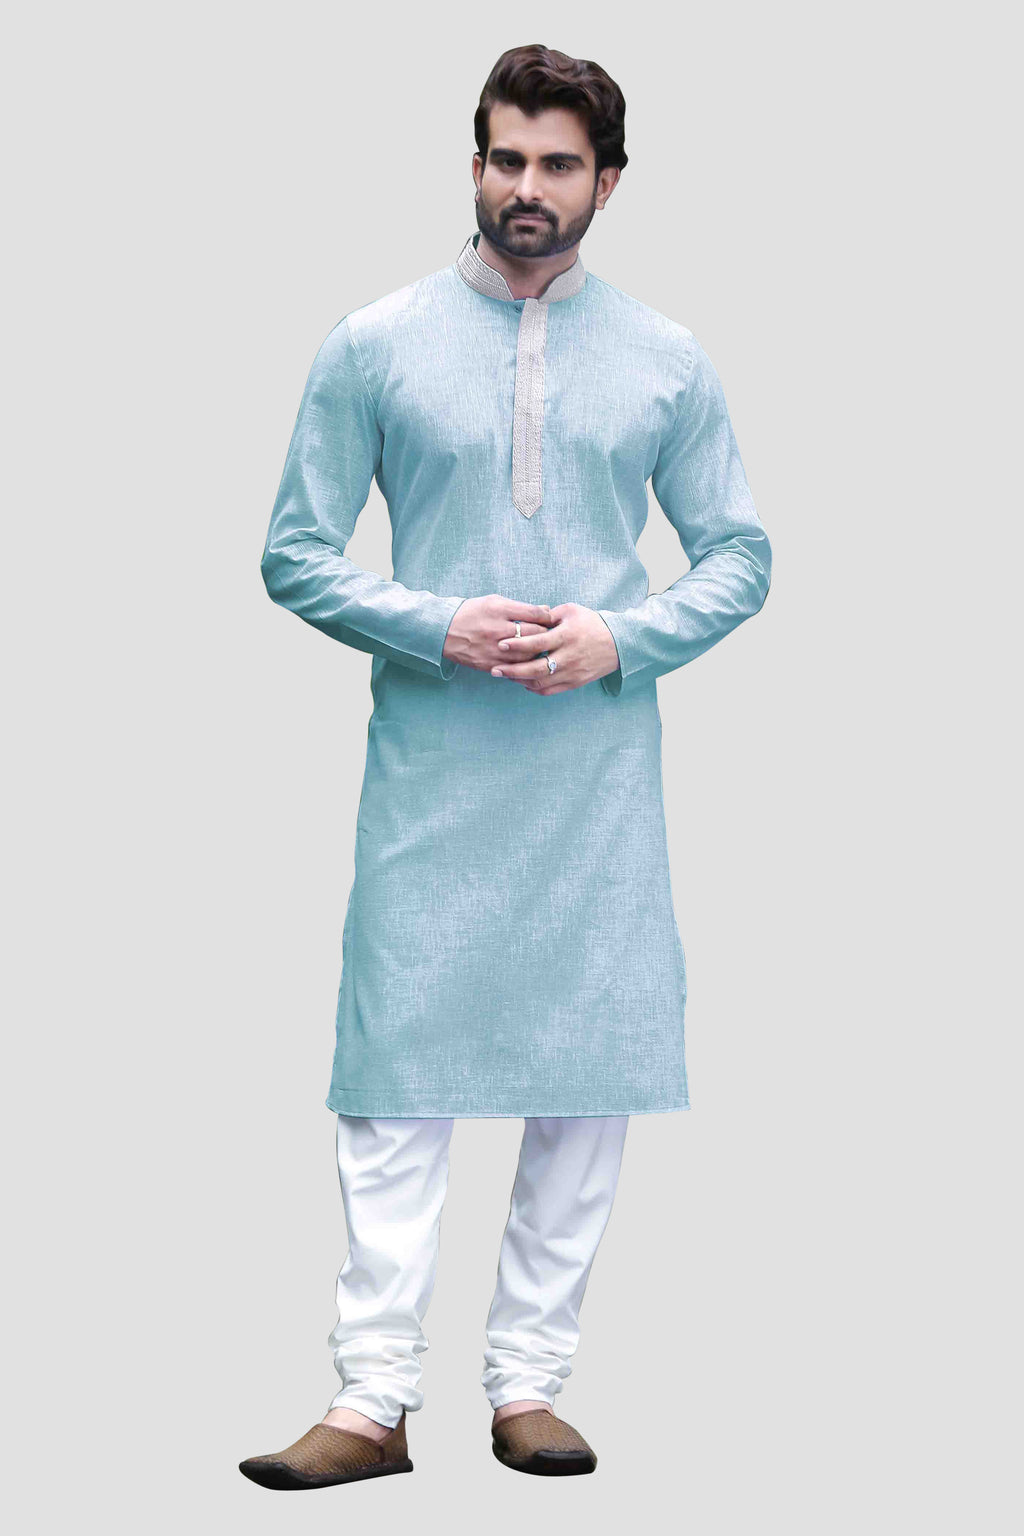 Ethniz - Men's SkyBlue Kurta with Churidar